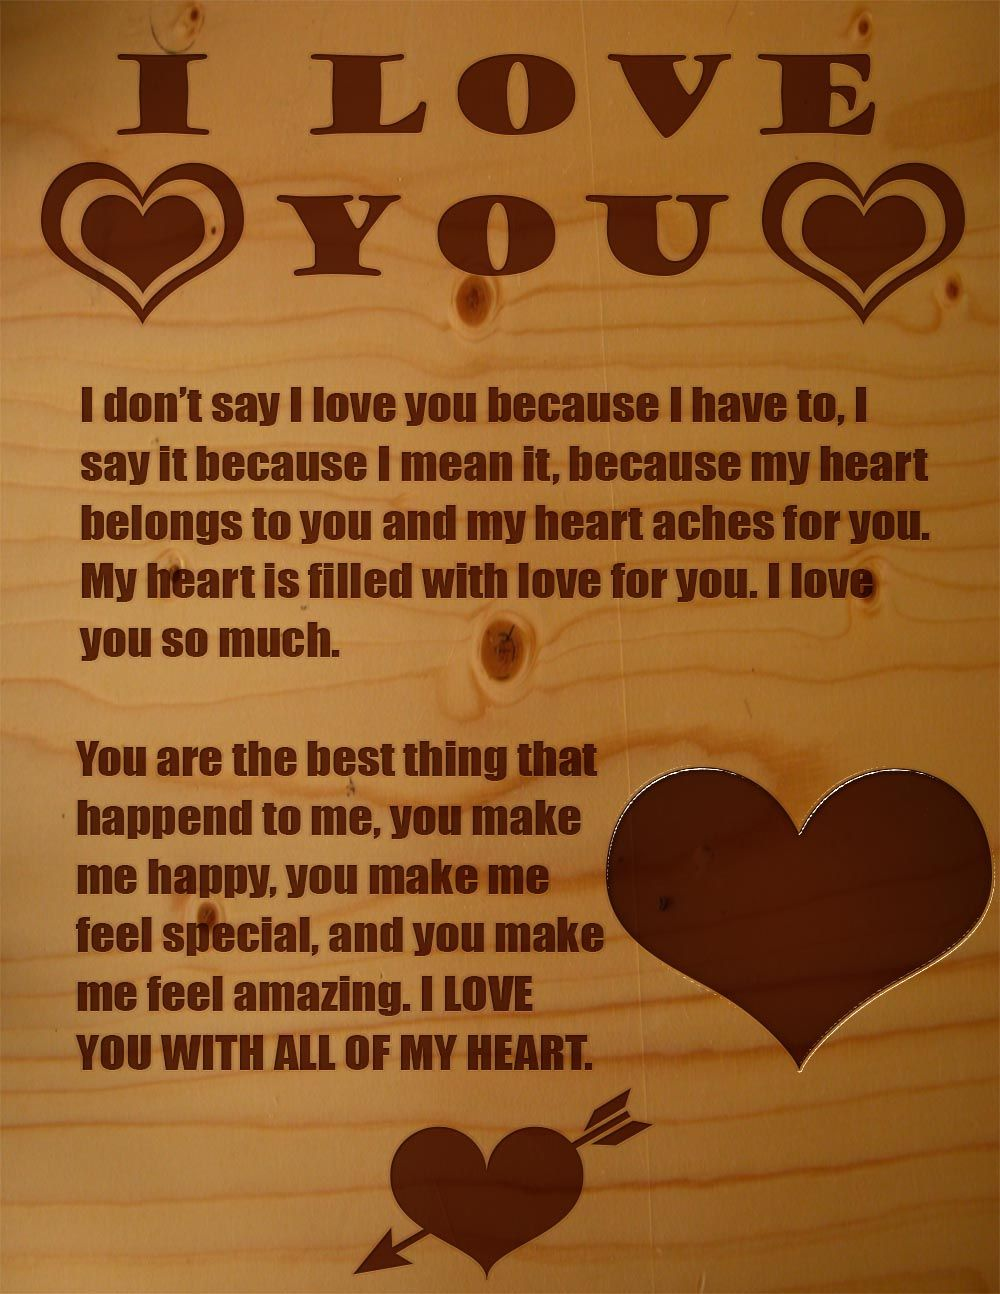 I Love You Ecards I Love You Ecards My Love Inspirational Quotes About Love